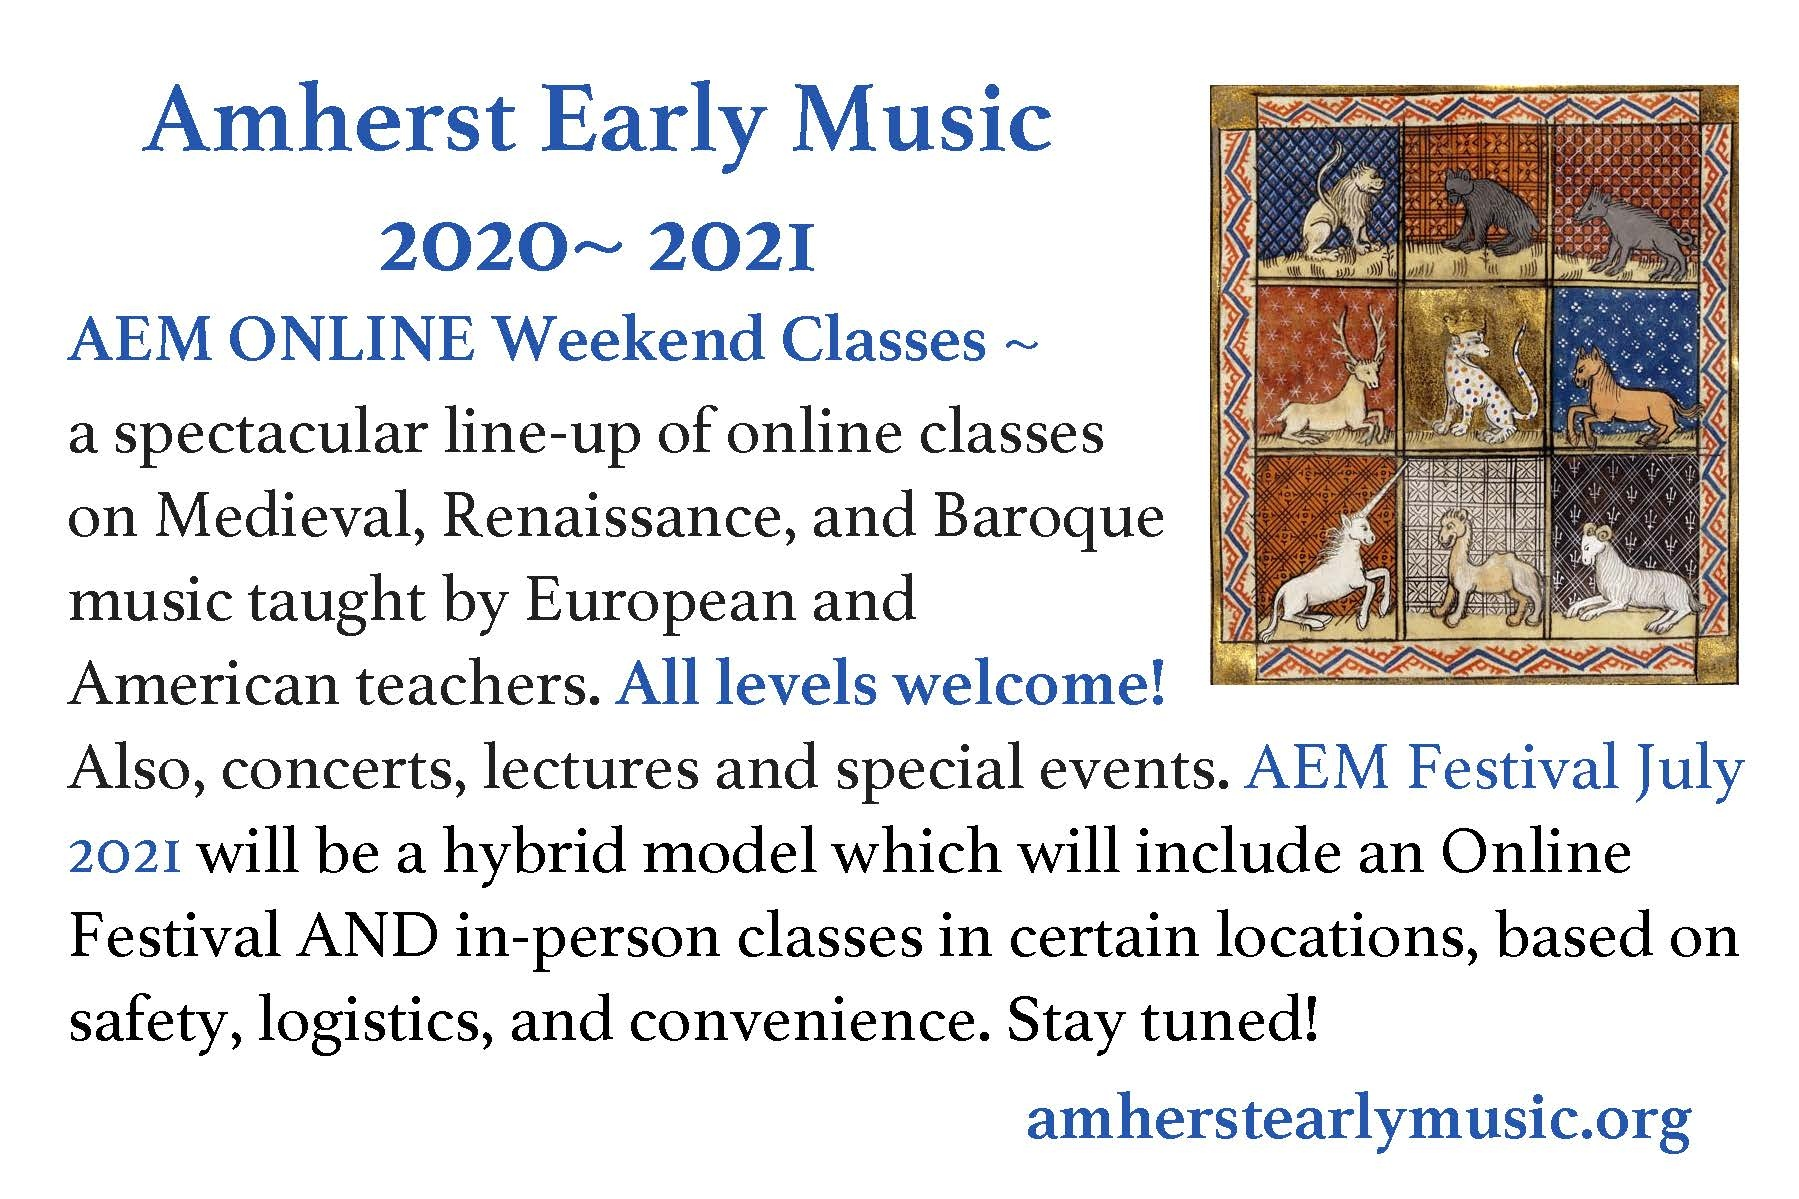 Amherst Early Music